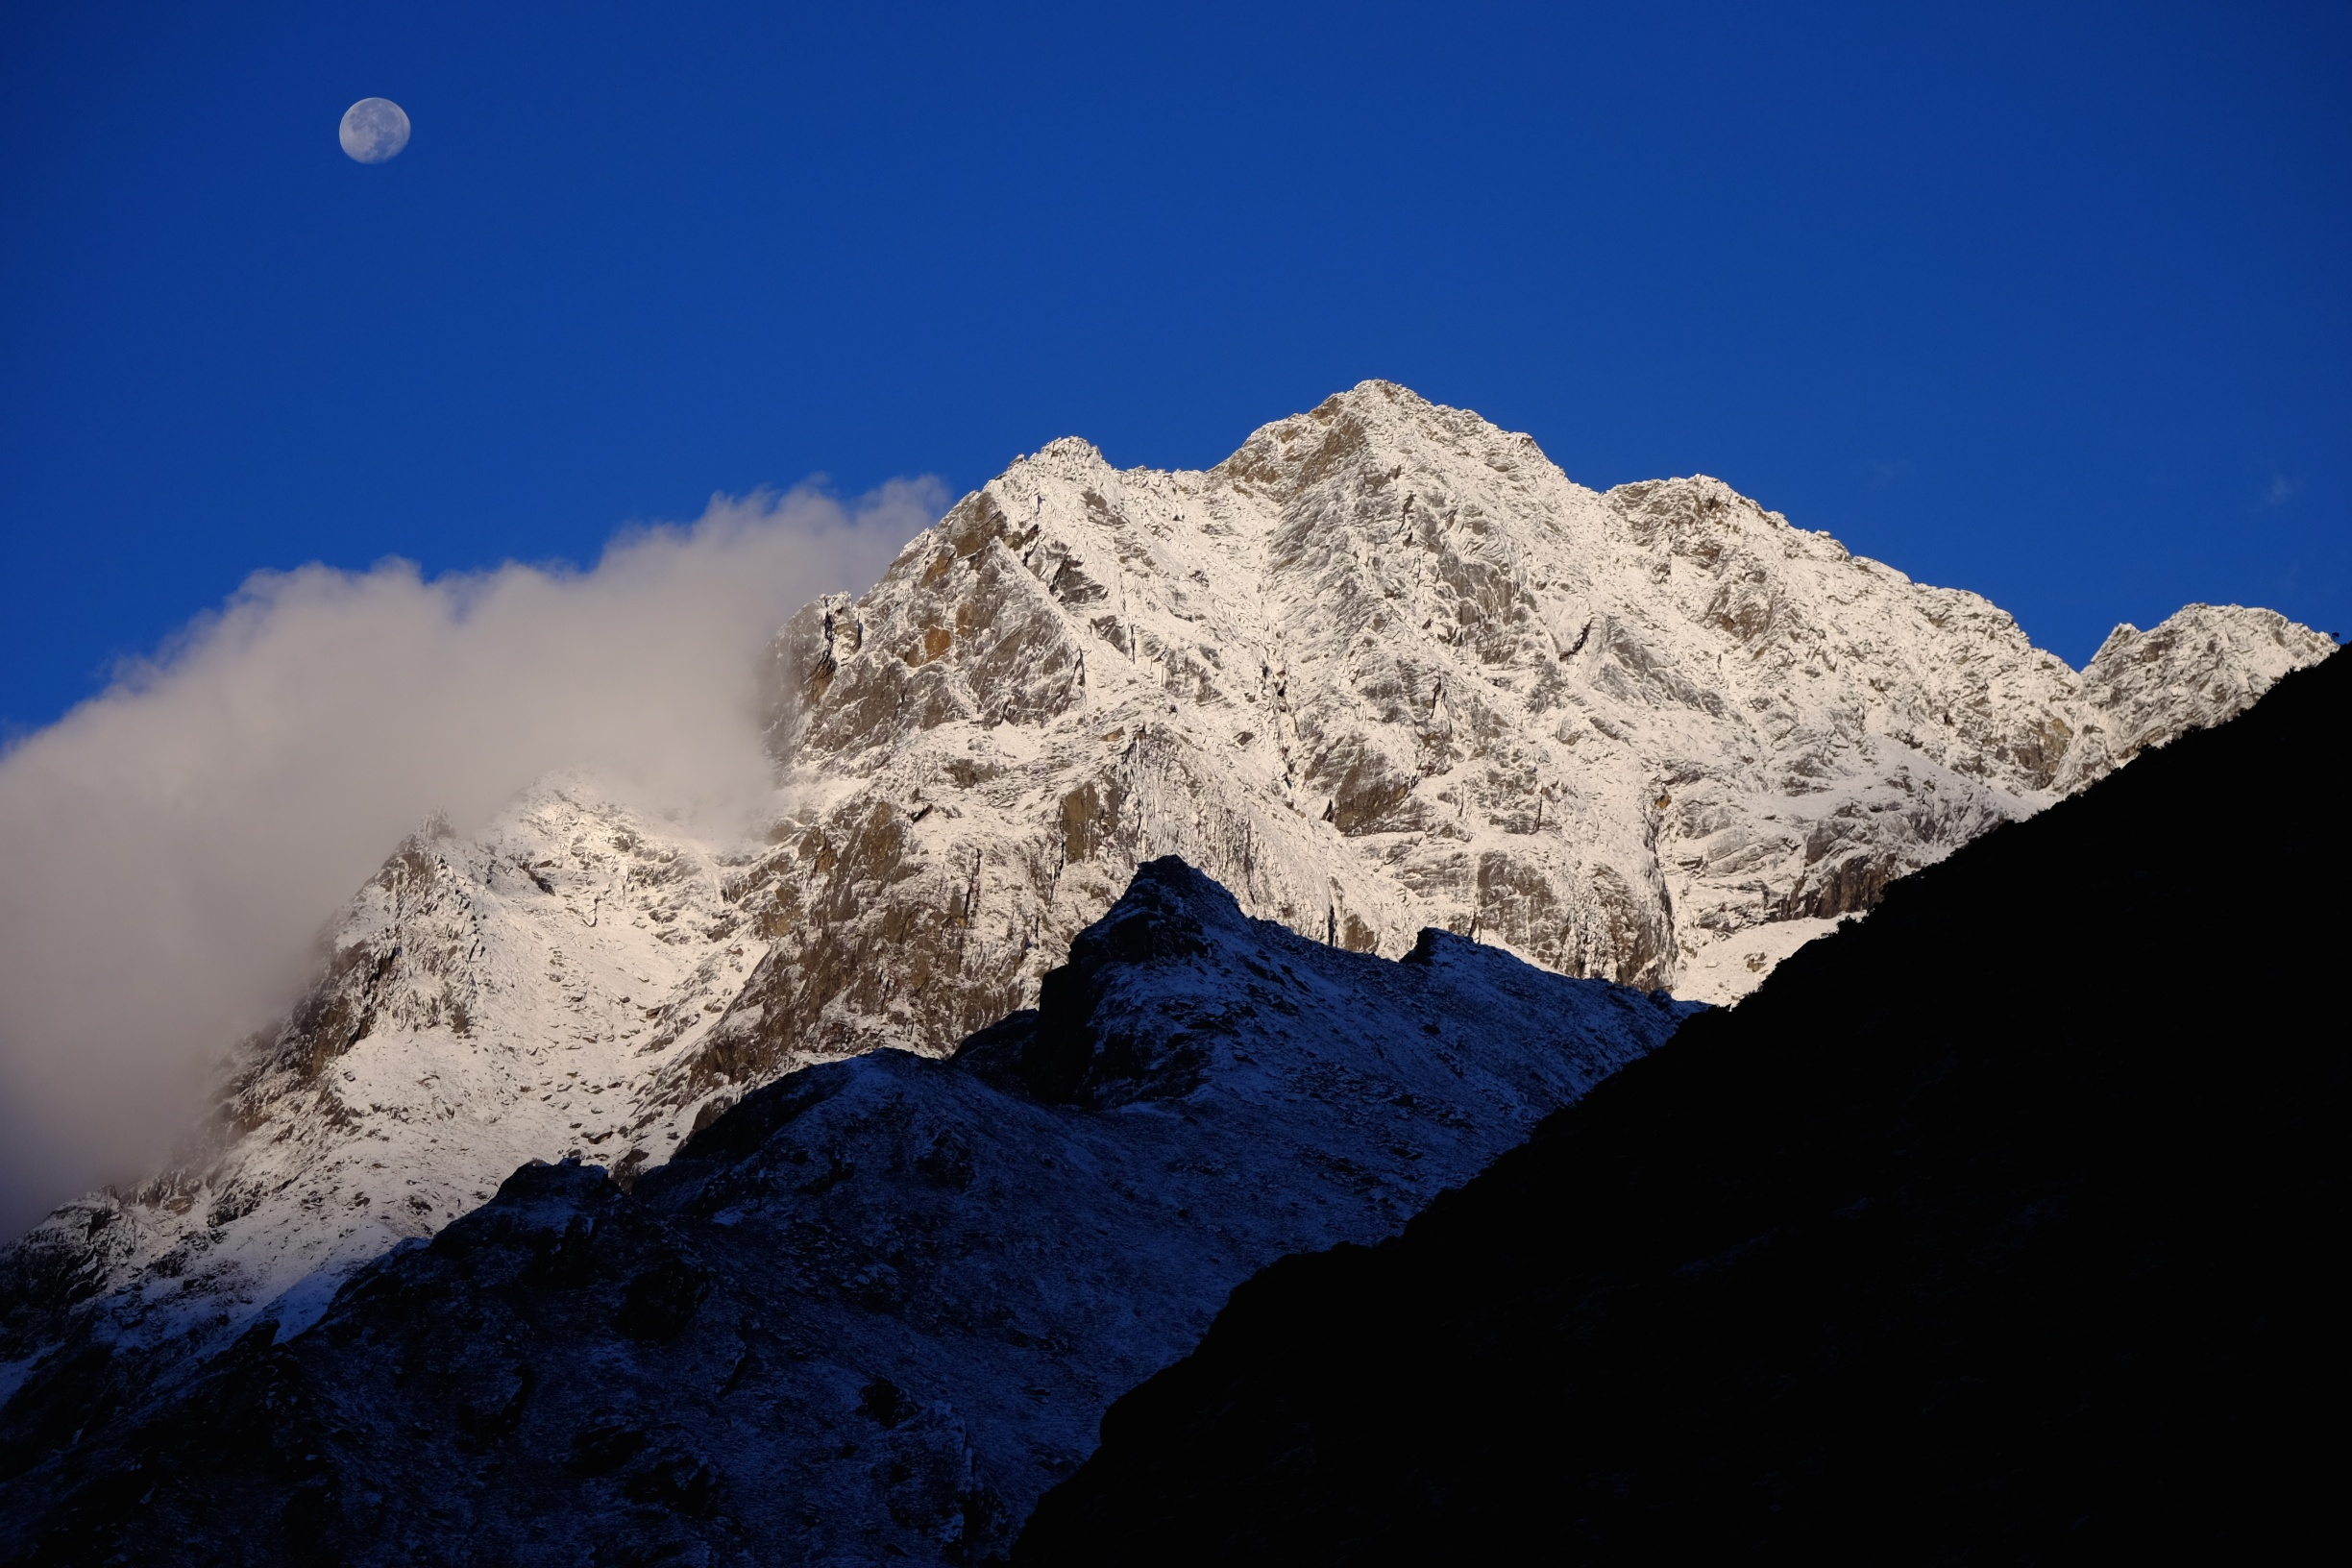 One Everest Base Camp Trek is not Enough